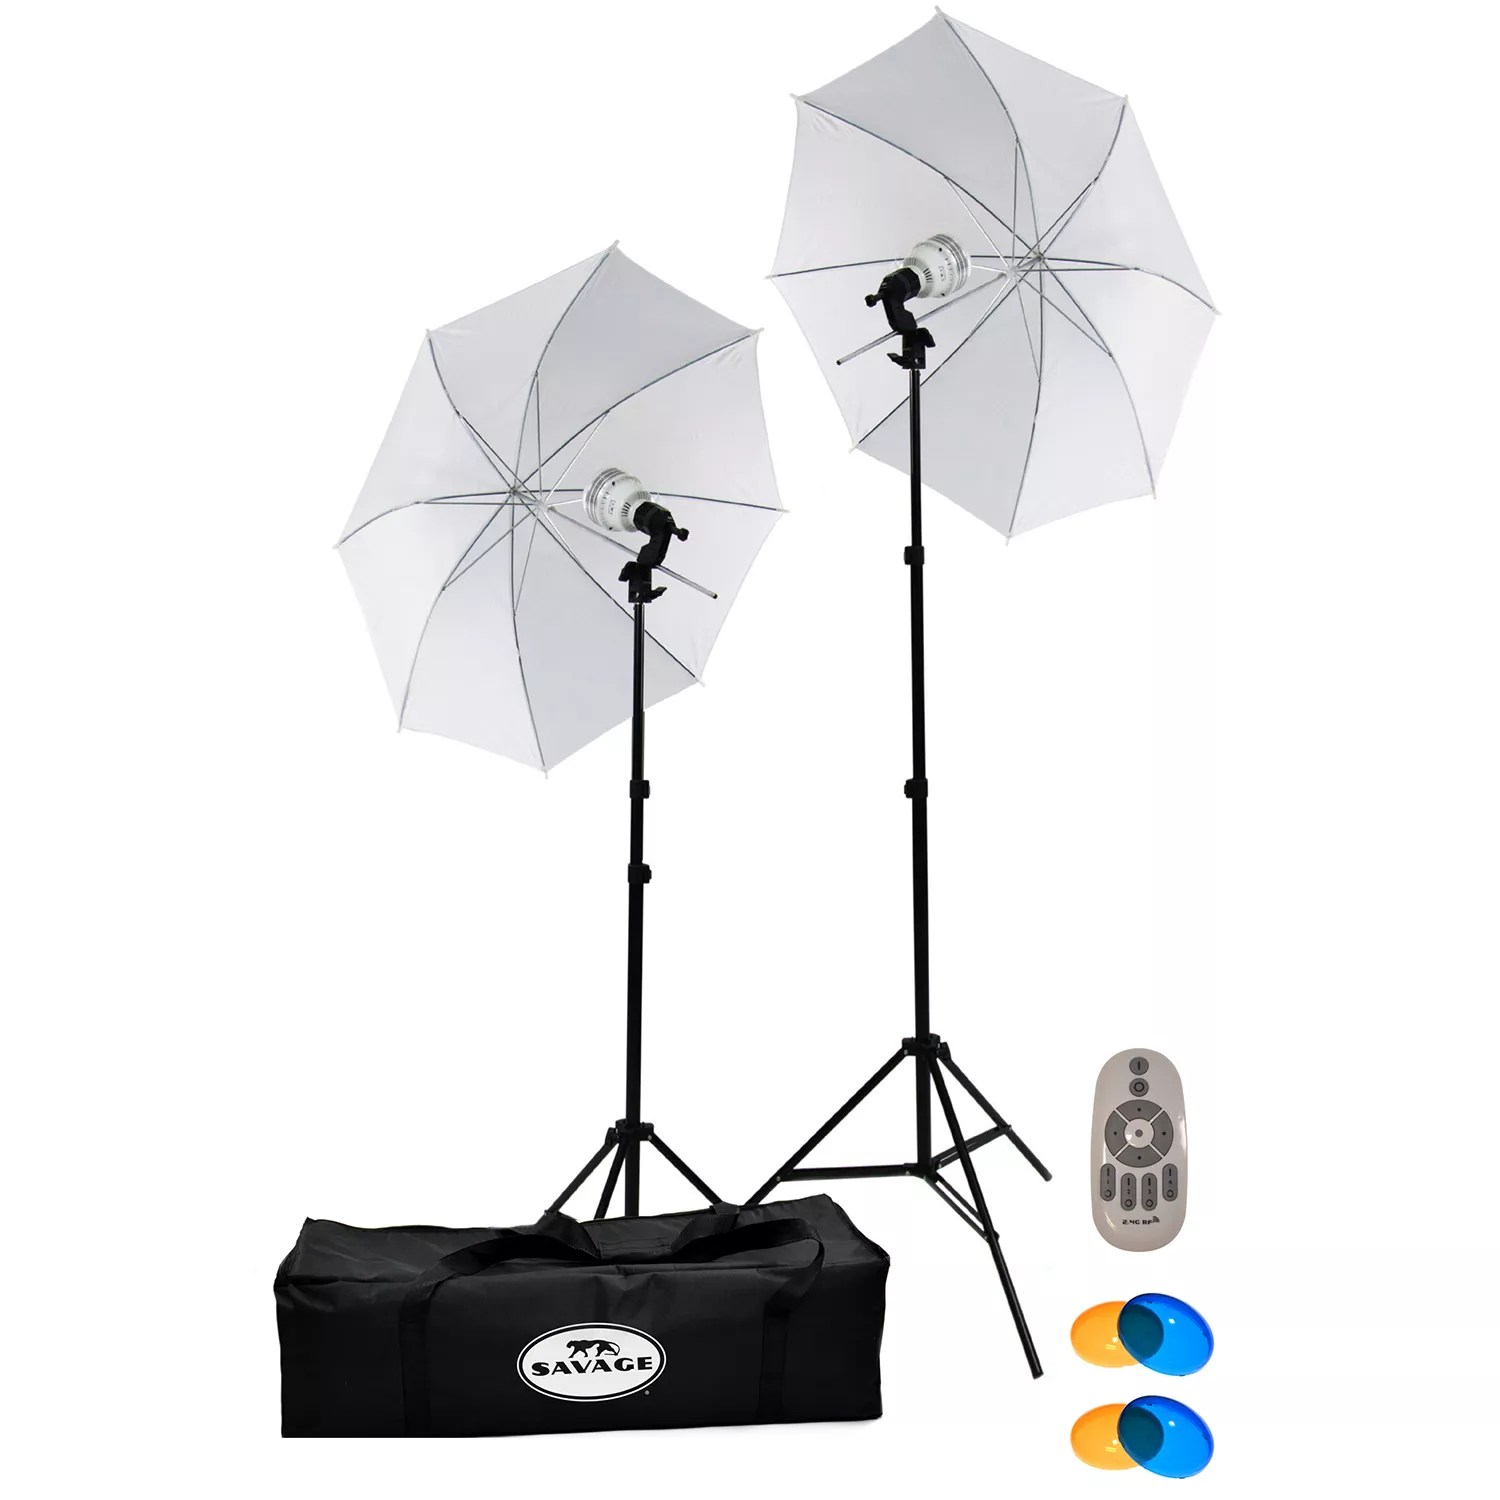 500 Watt 500 Watt Led Studio Light Kit Savage Universal